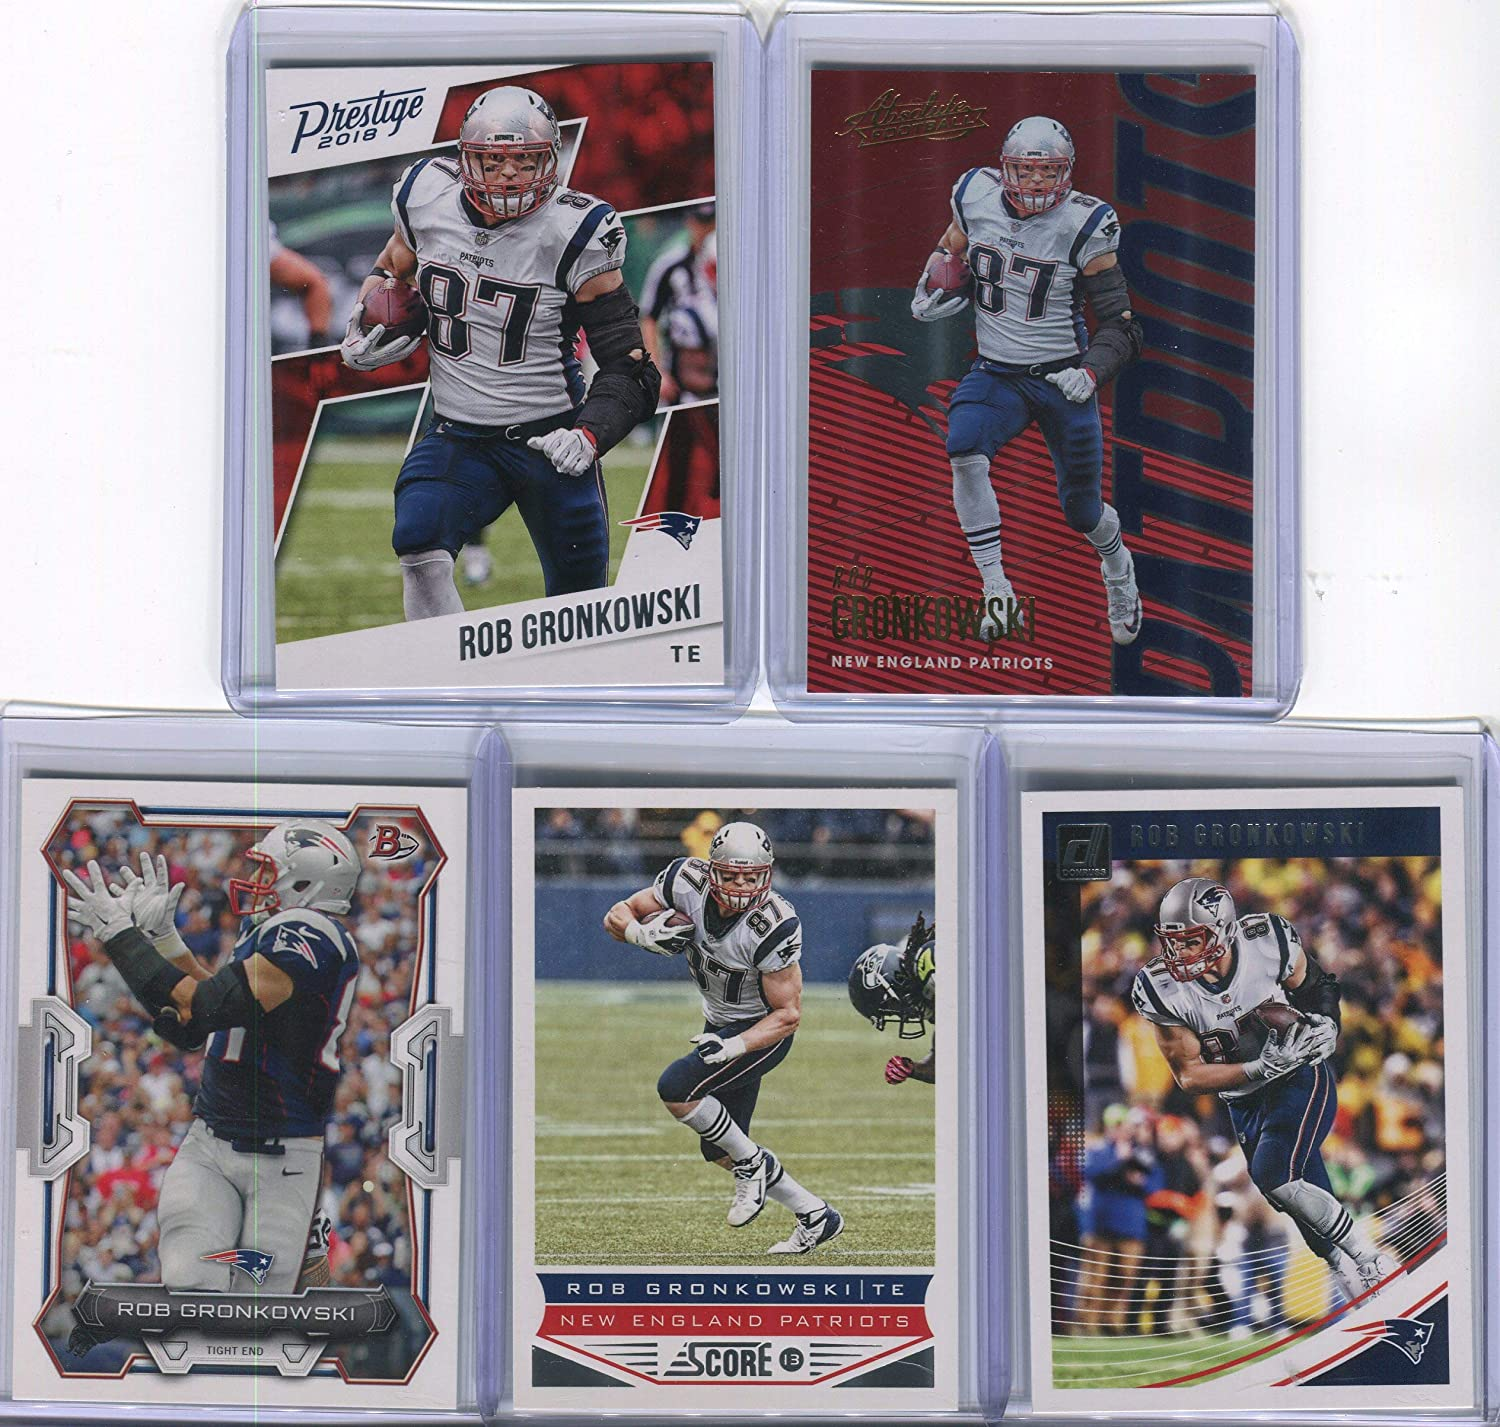 Rob Gronkowski New England Patriots Assorted Football Cards 5 Card Lot